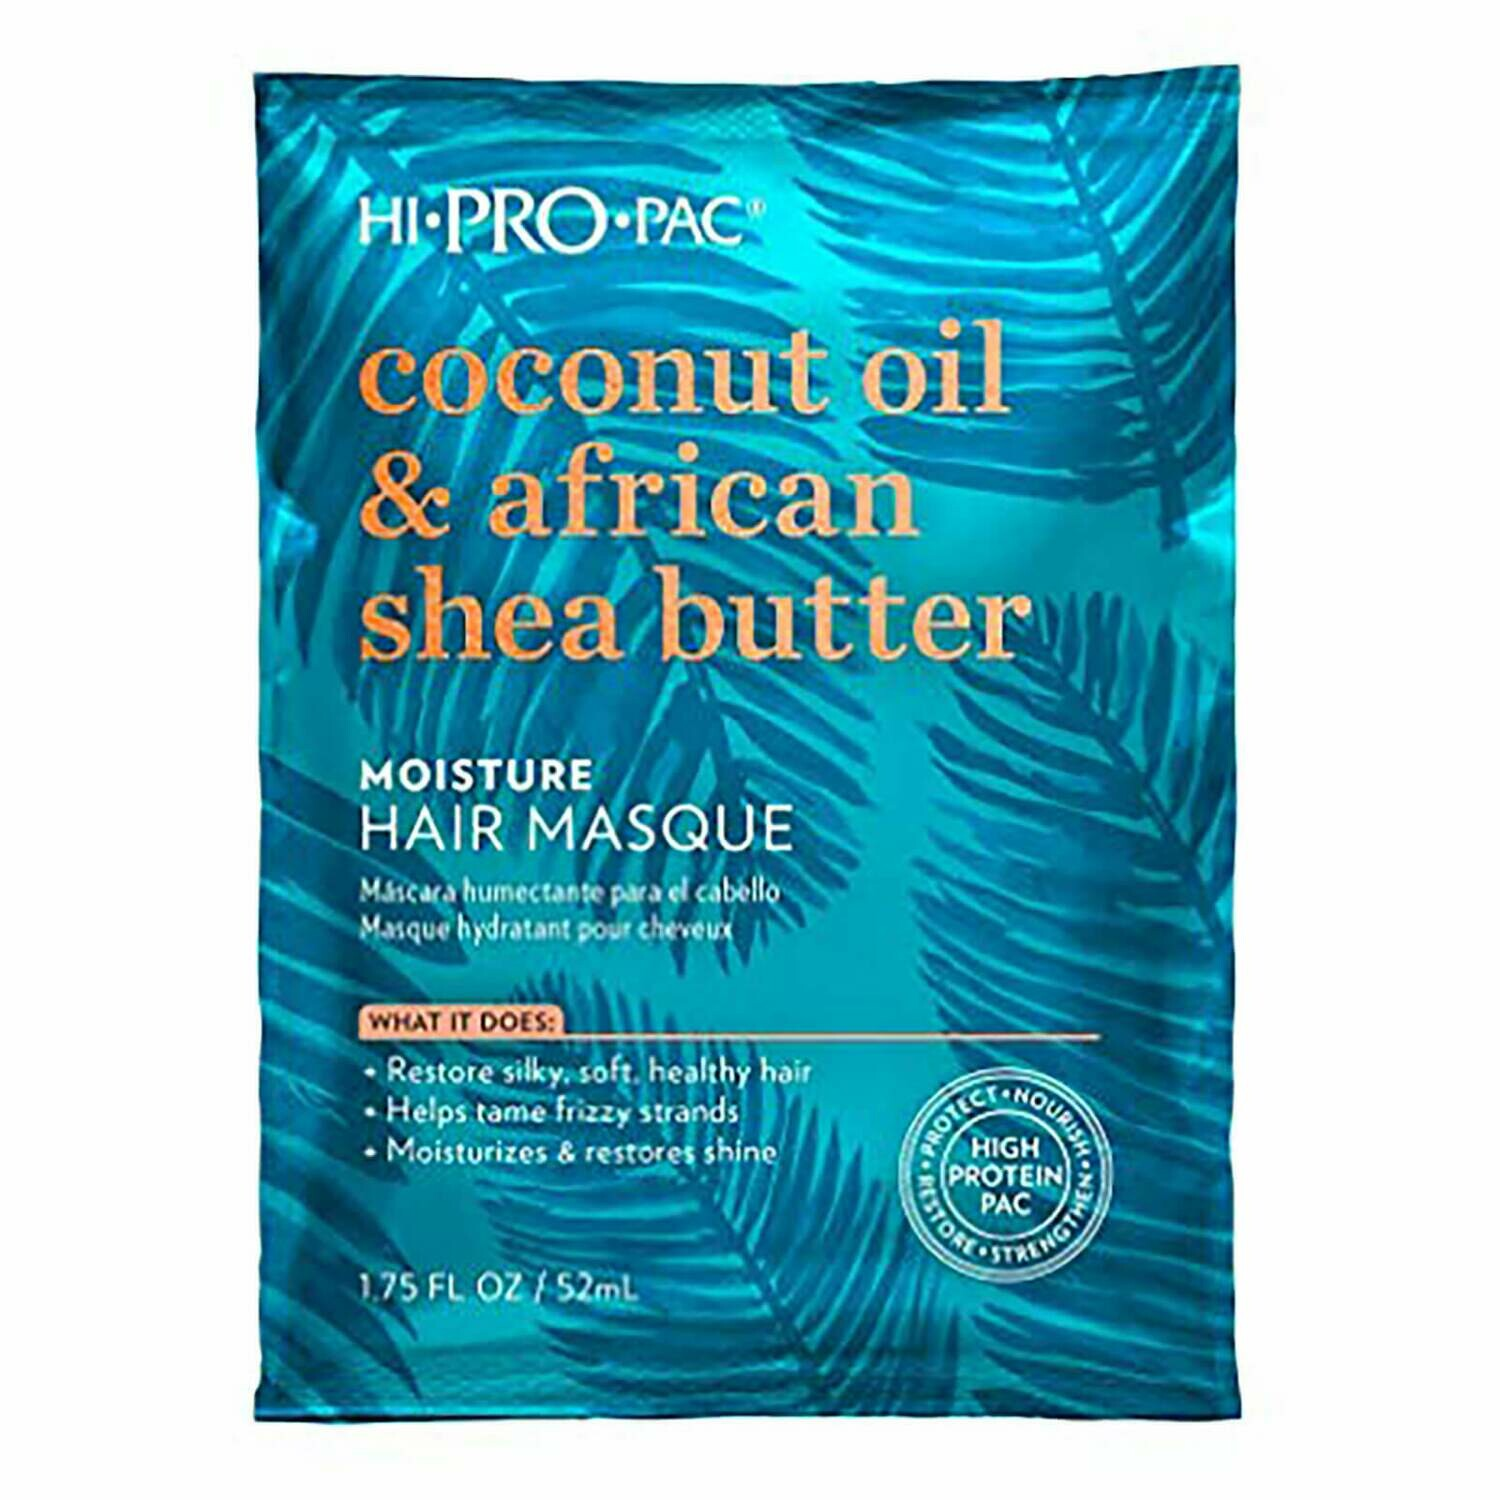 Hi Pro Pac coconut oil & african shea butter